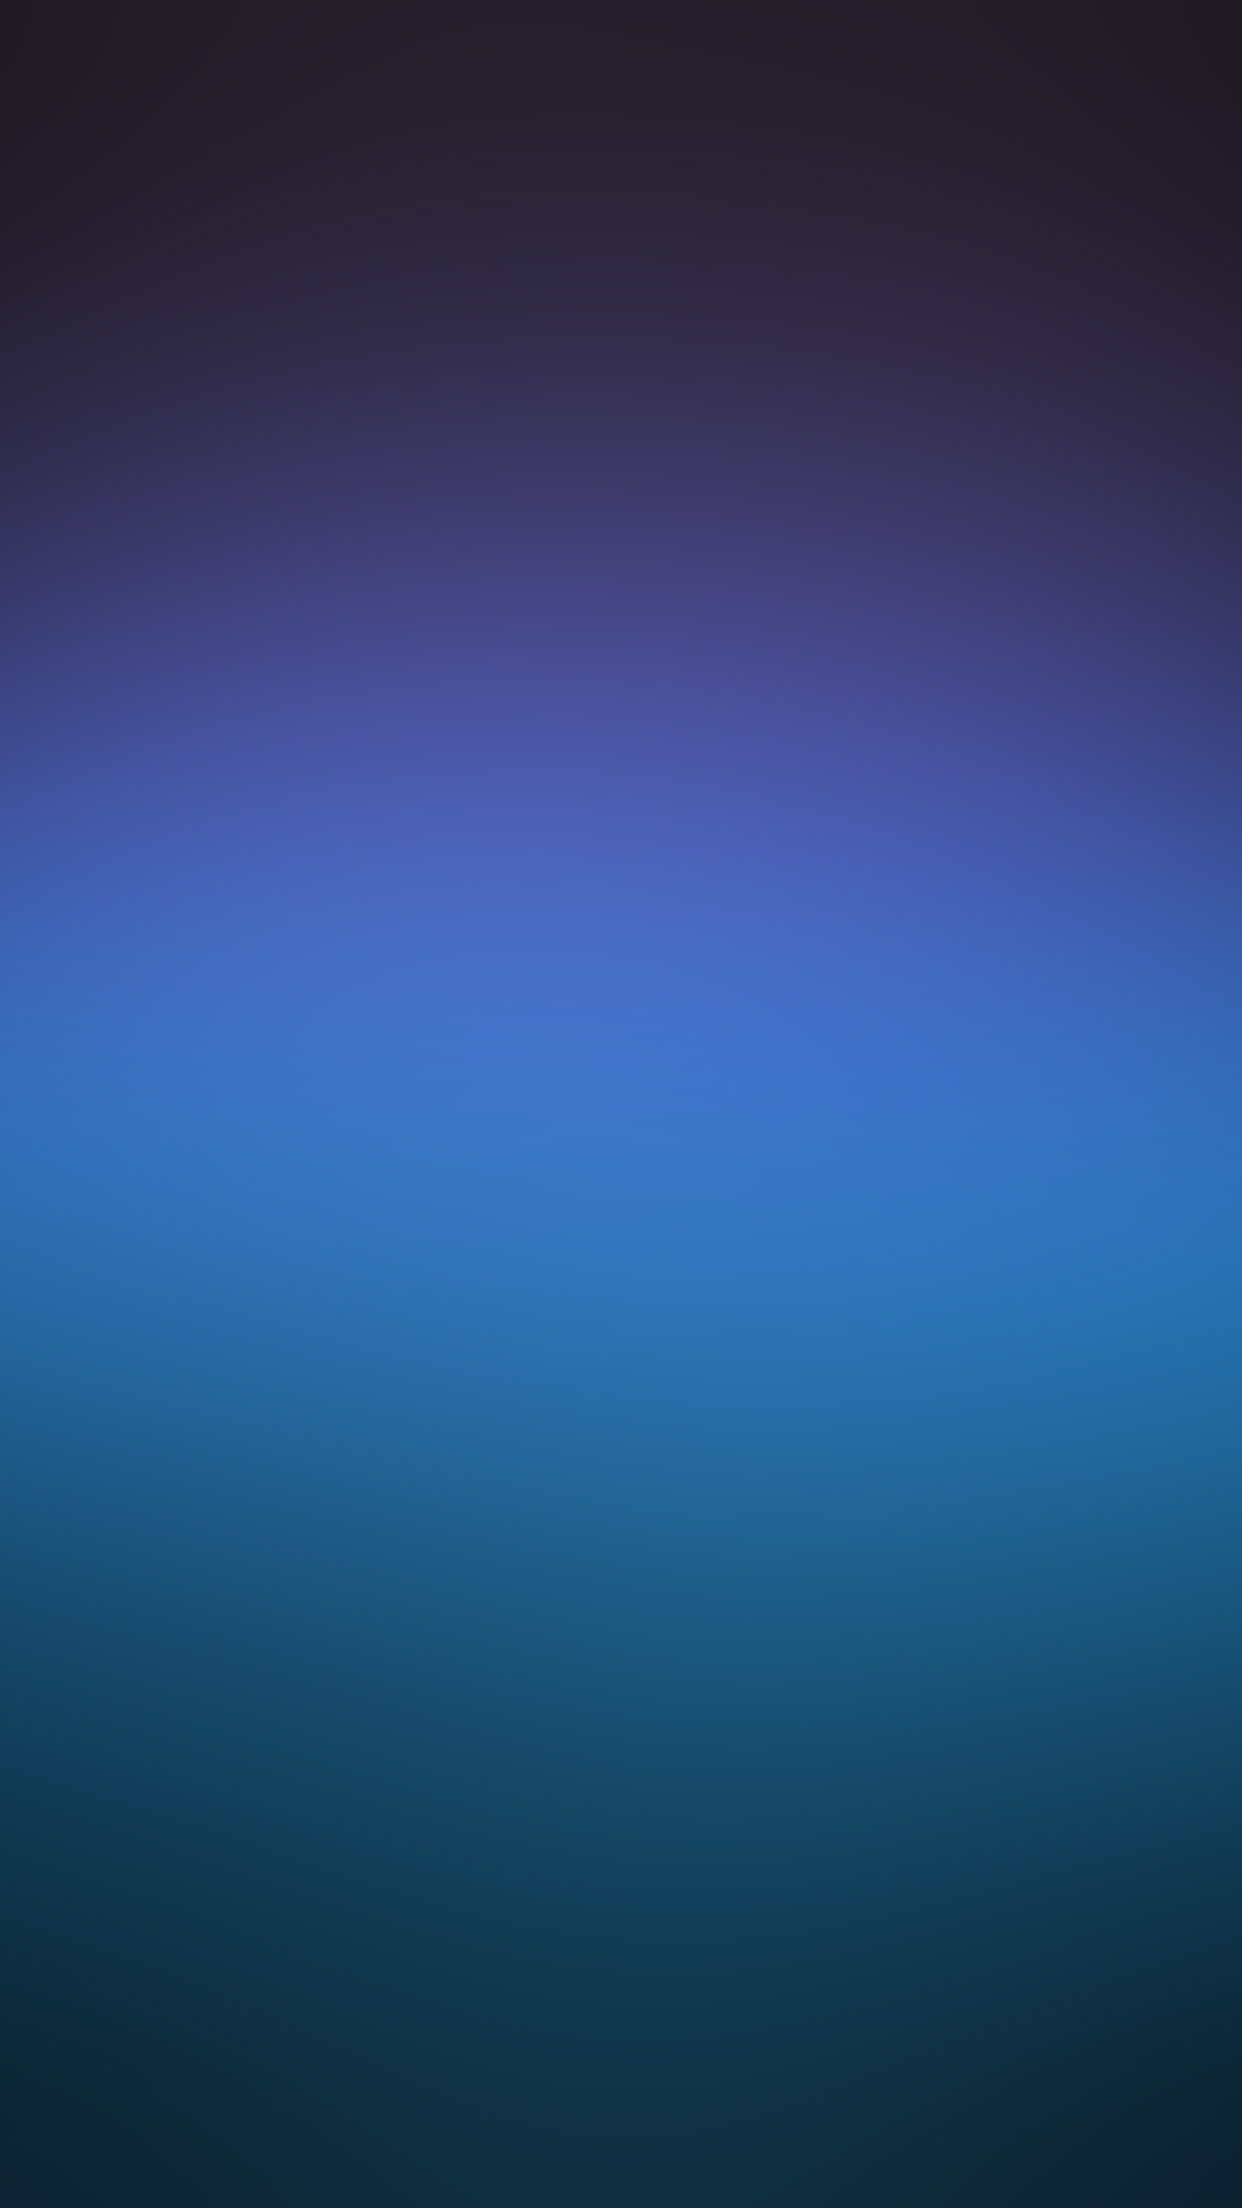 Blue Iphone X Wallpaper Papers Co Iphone Wallpaper Sm18 Blue Blur Gradation